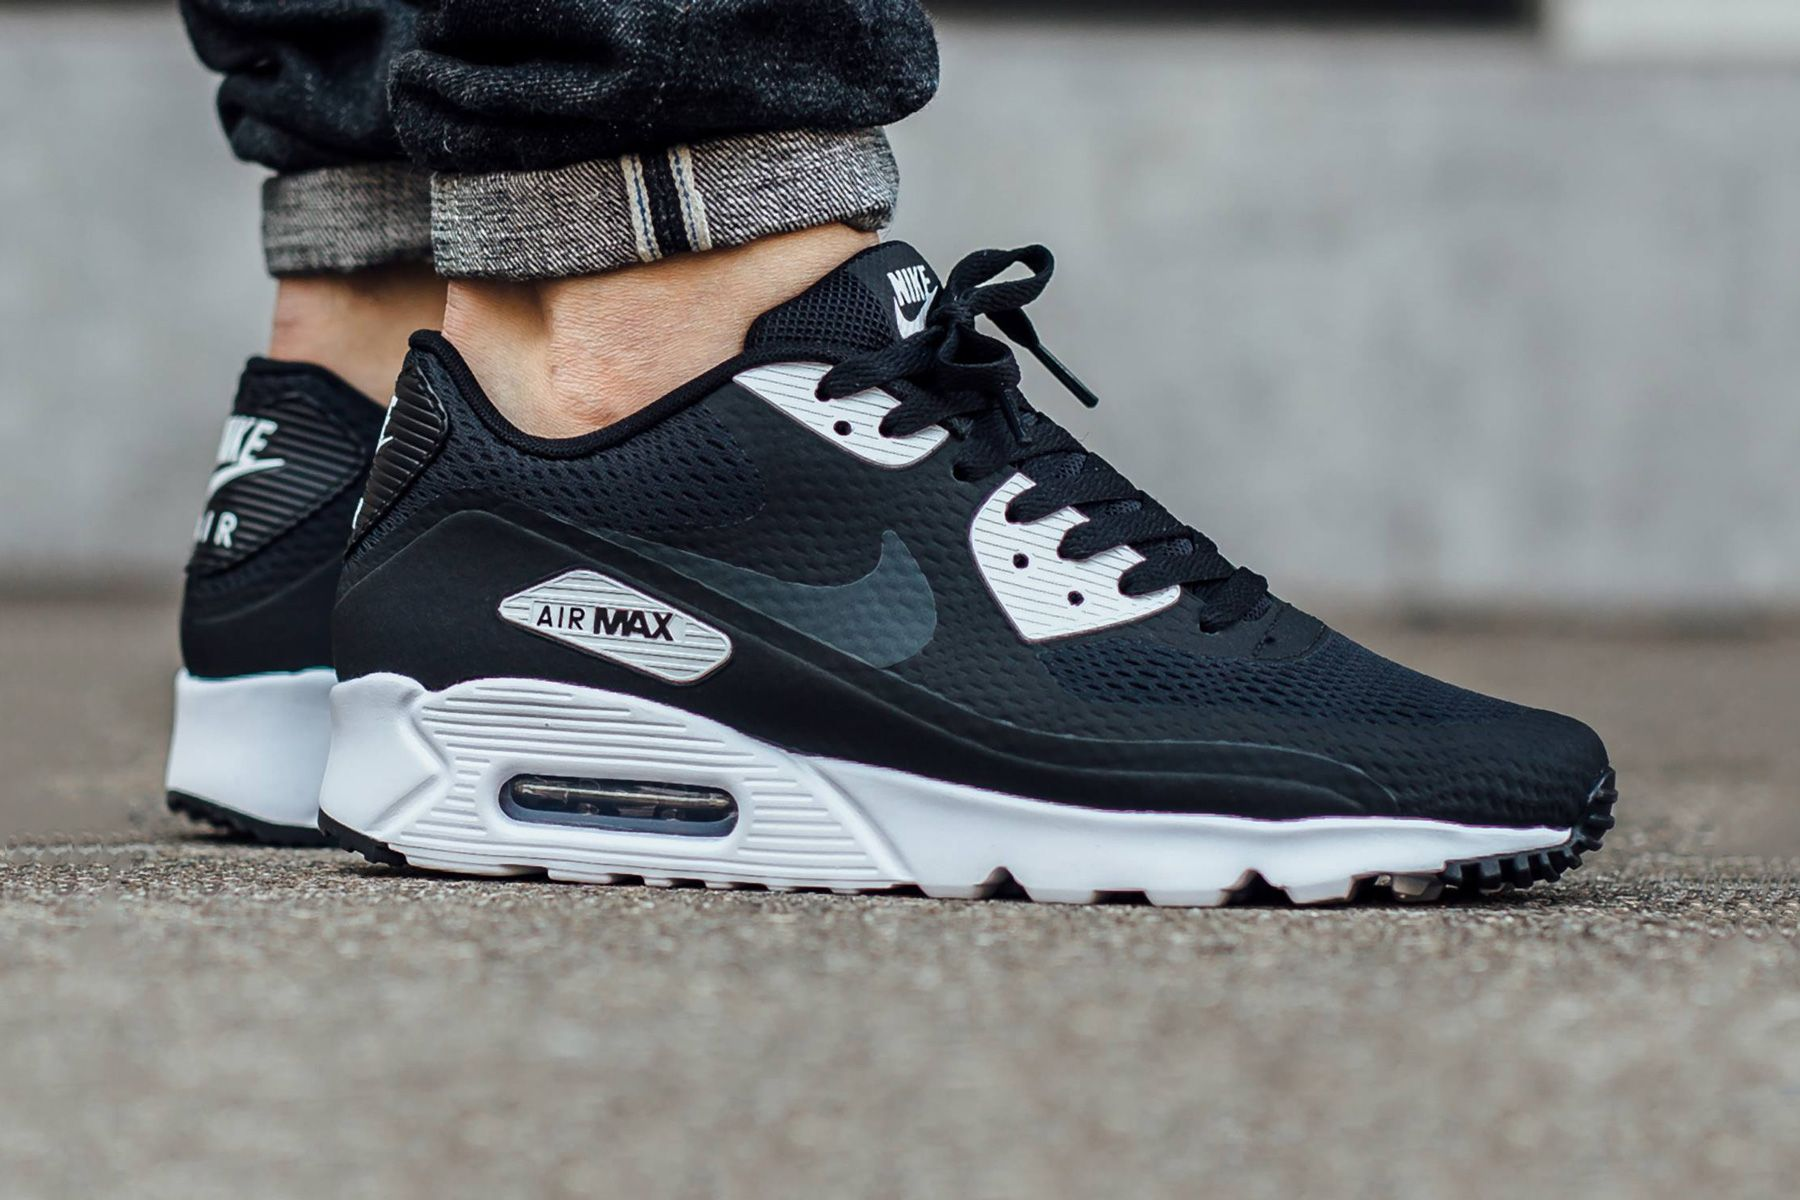 9a0d7574473 Nike Air Max 90 Ultra Essential